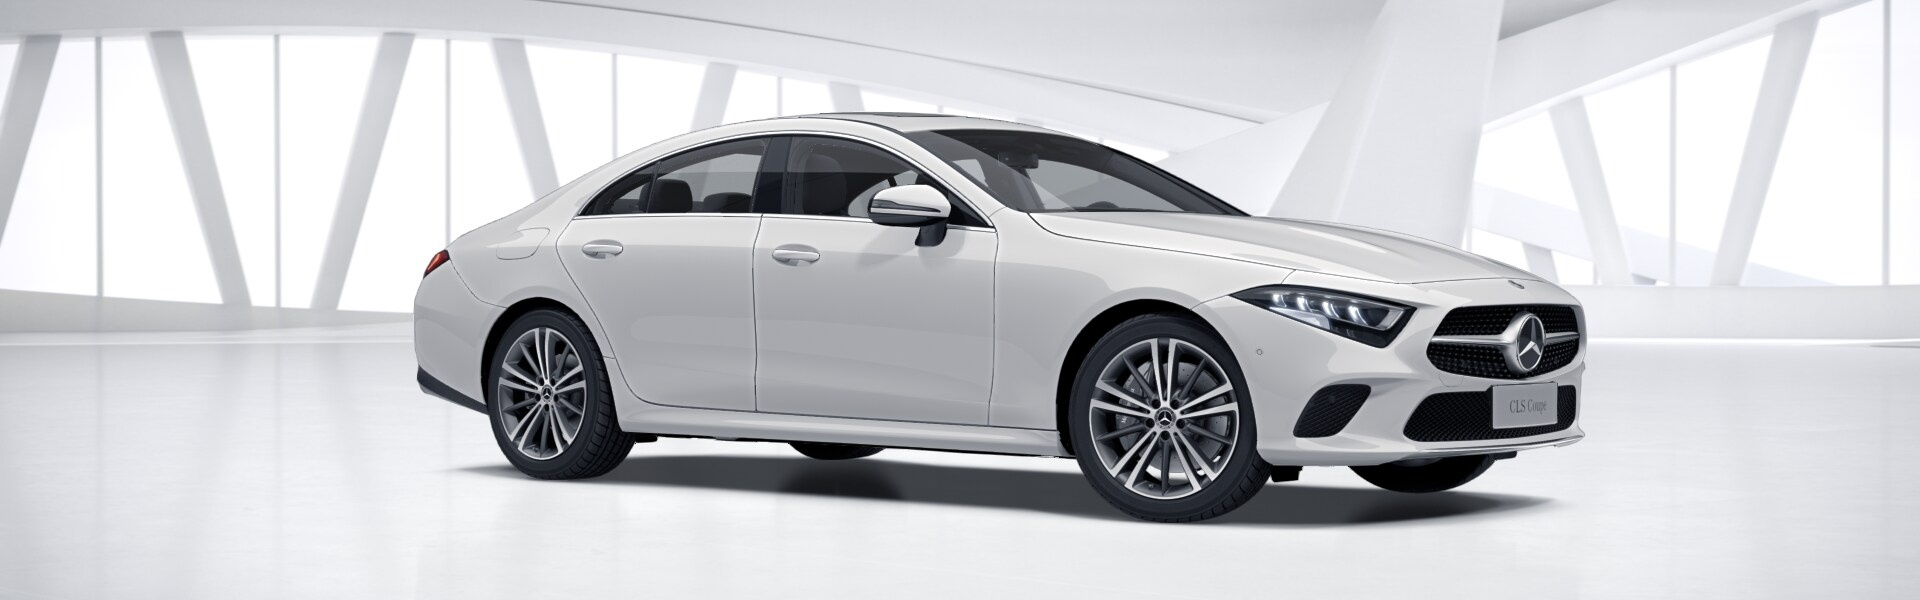 2020-mercedes-benz-cls-260-china-8.jpg